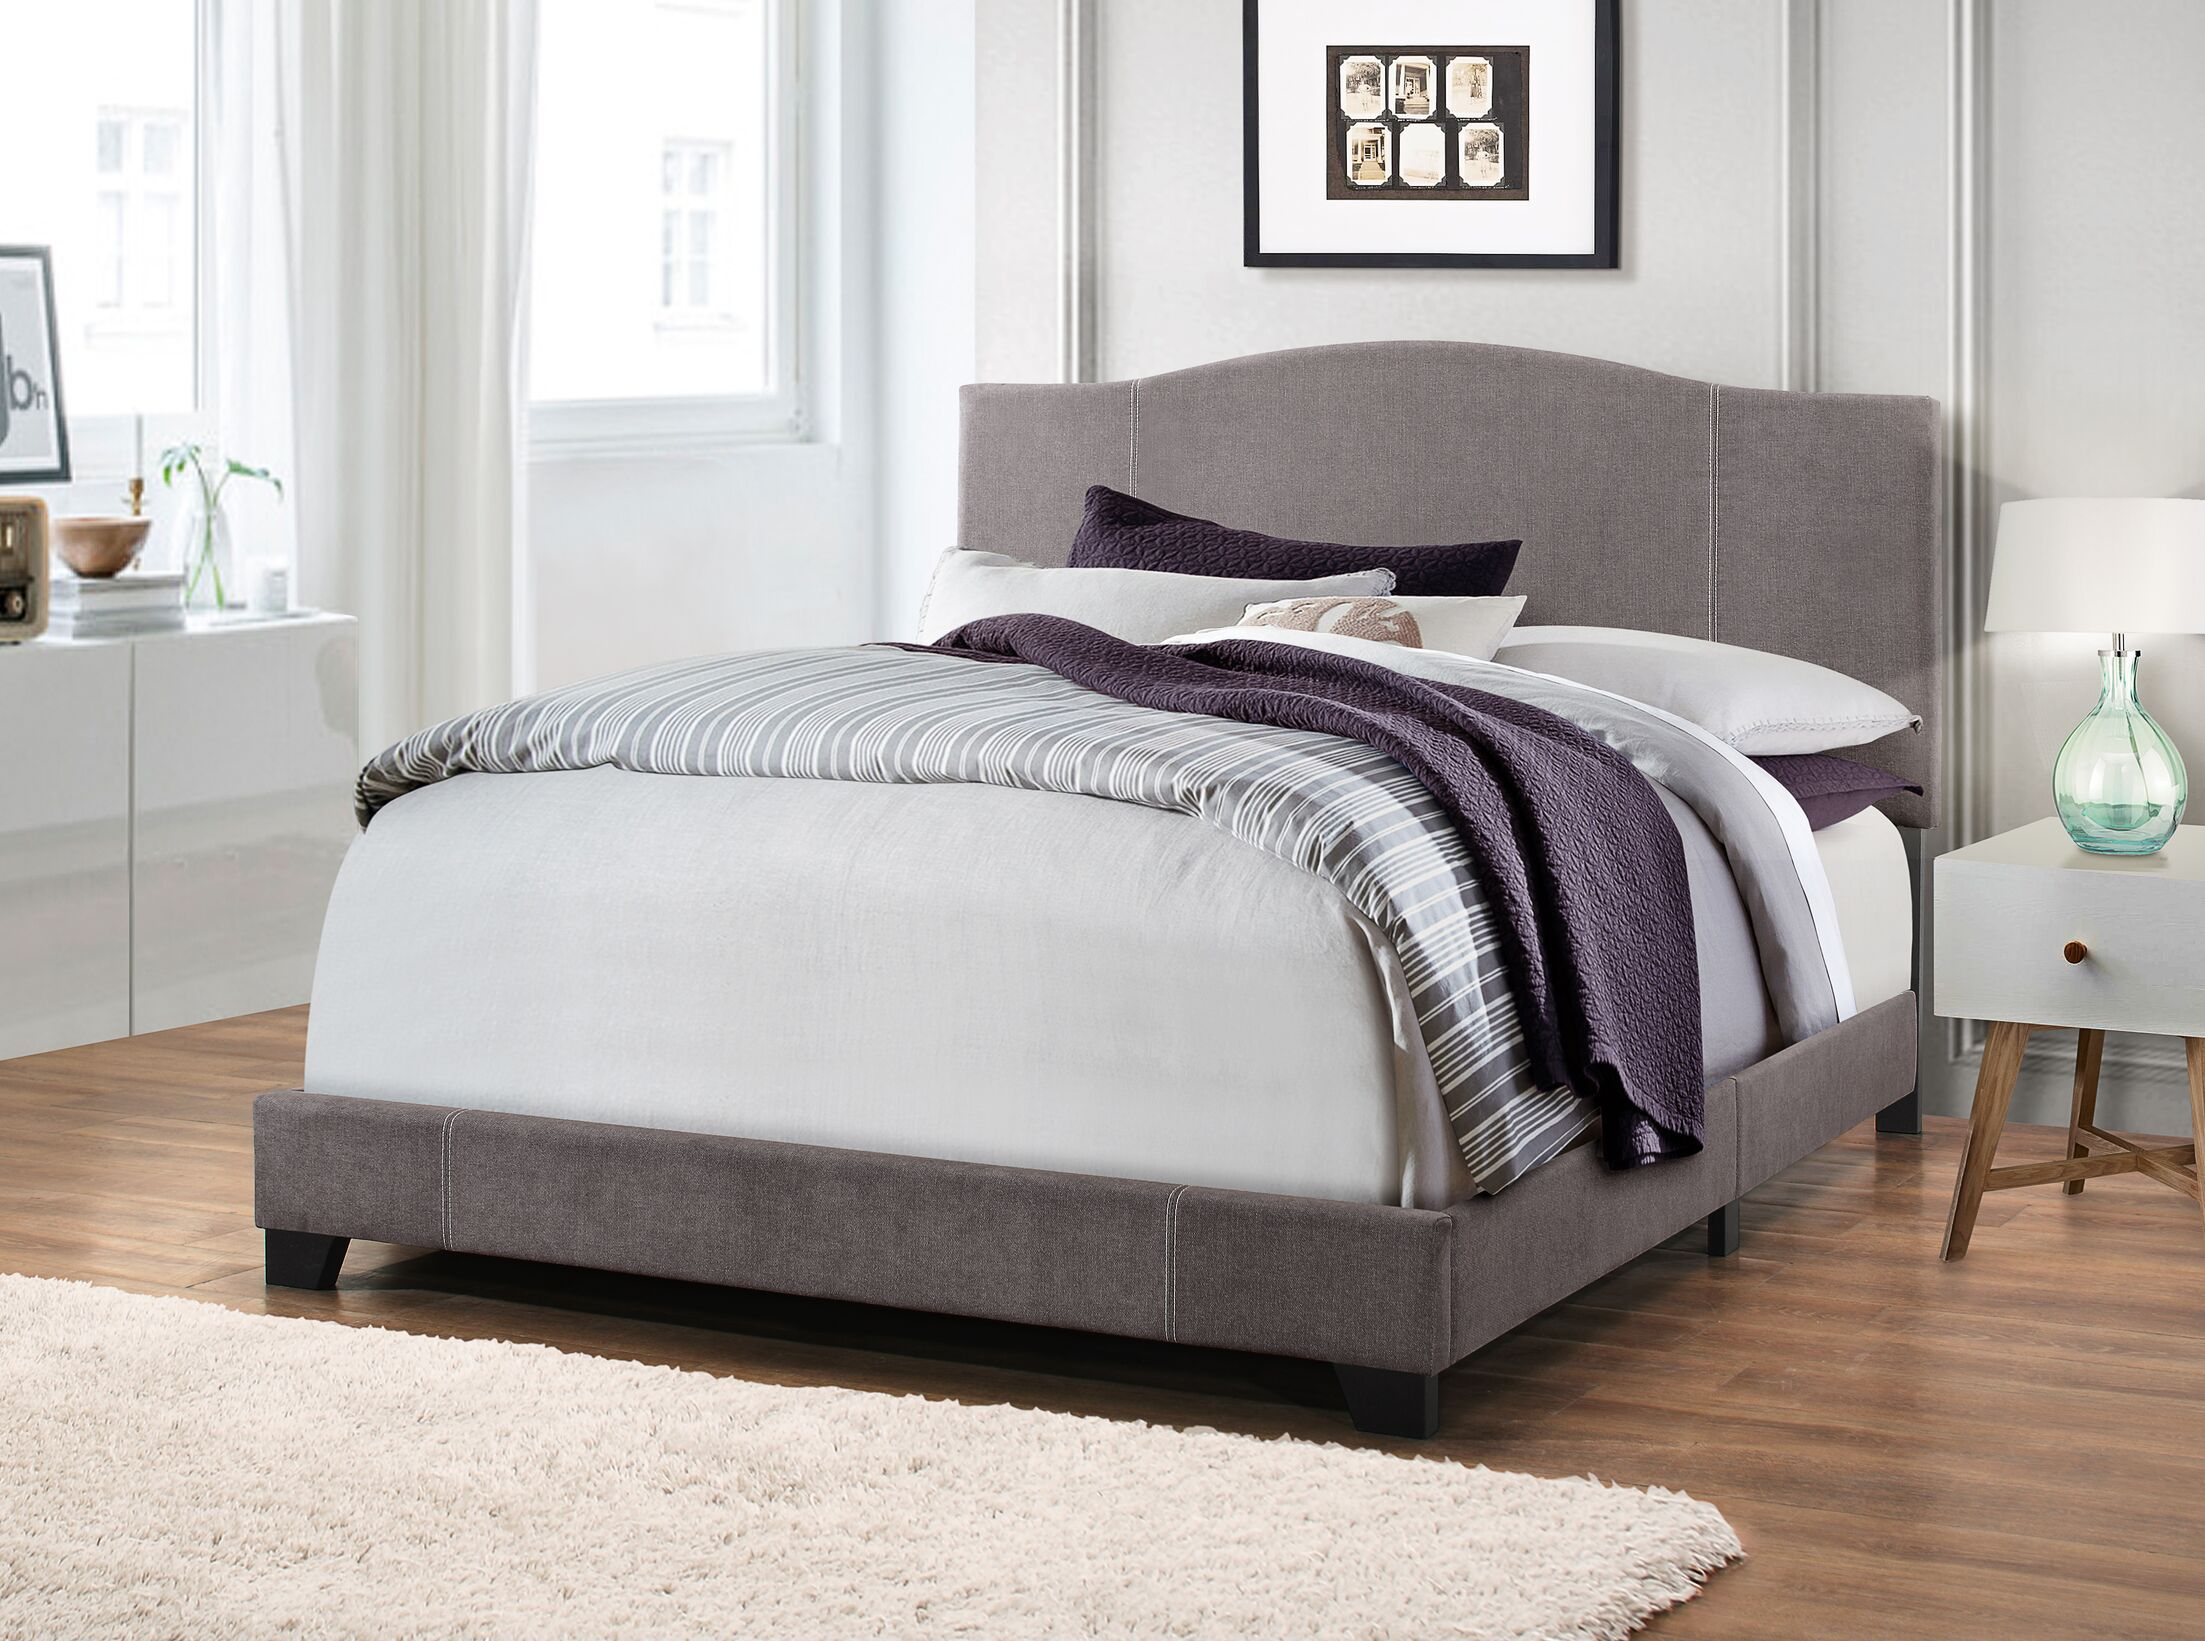 Black Mesa Modified Camel Back Upholstered Panel Bed Size: Queen, Color: Denim Vintage